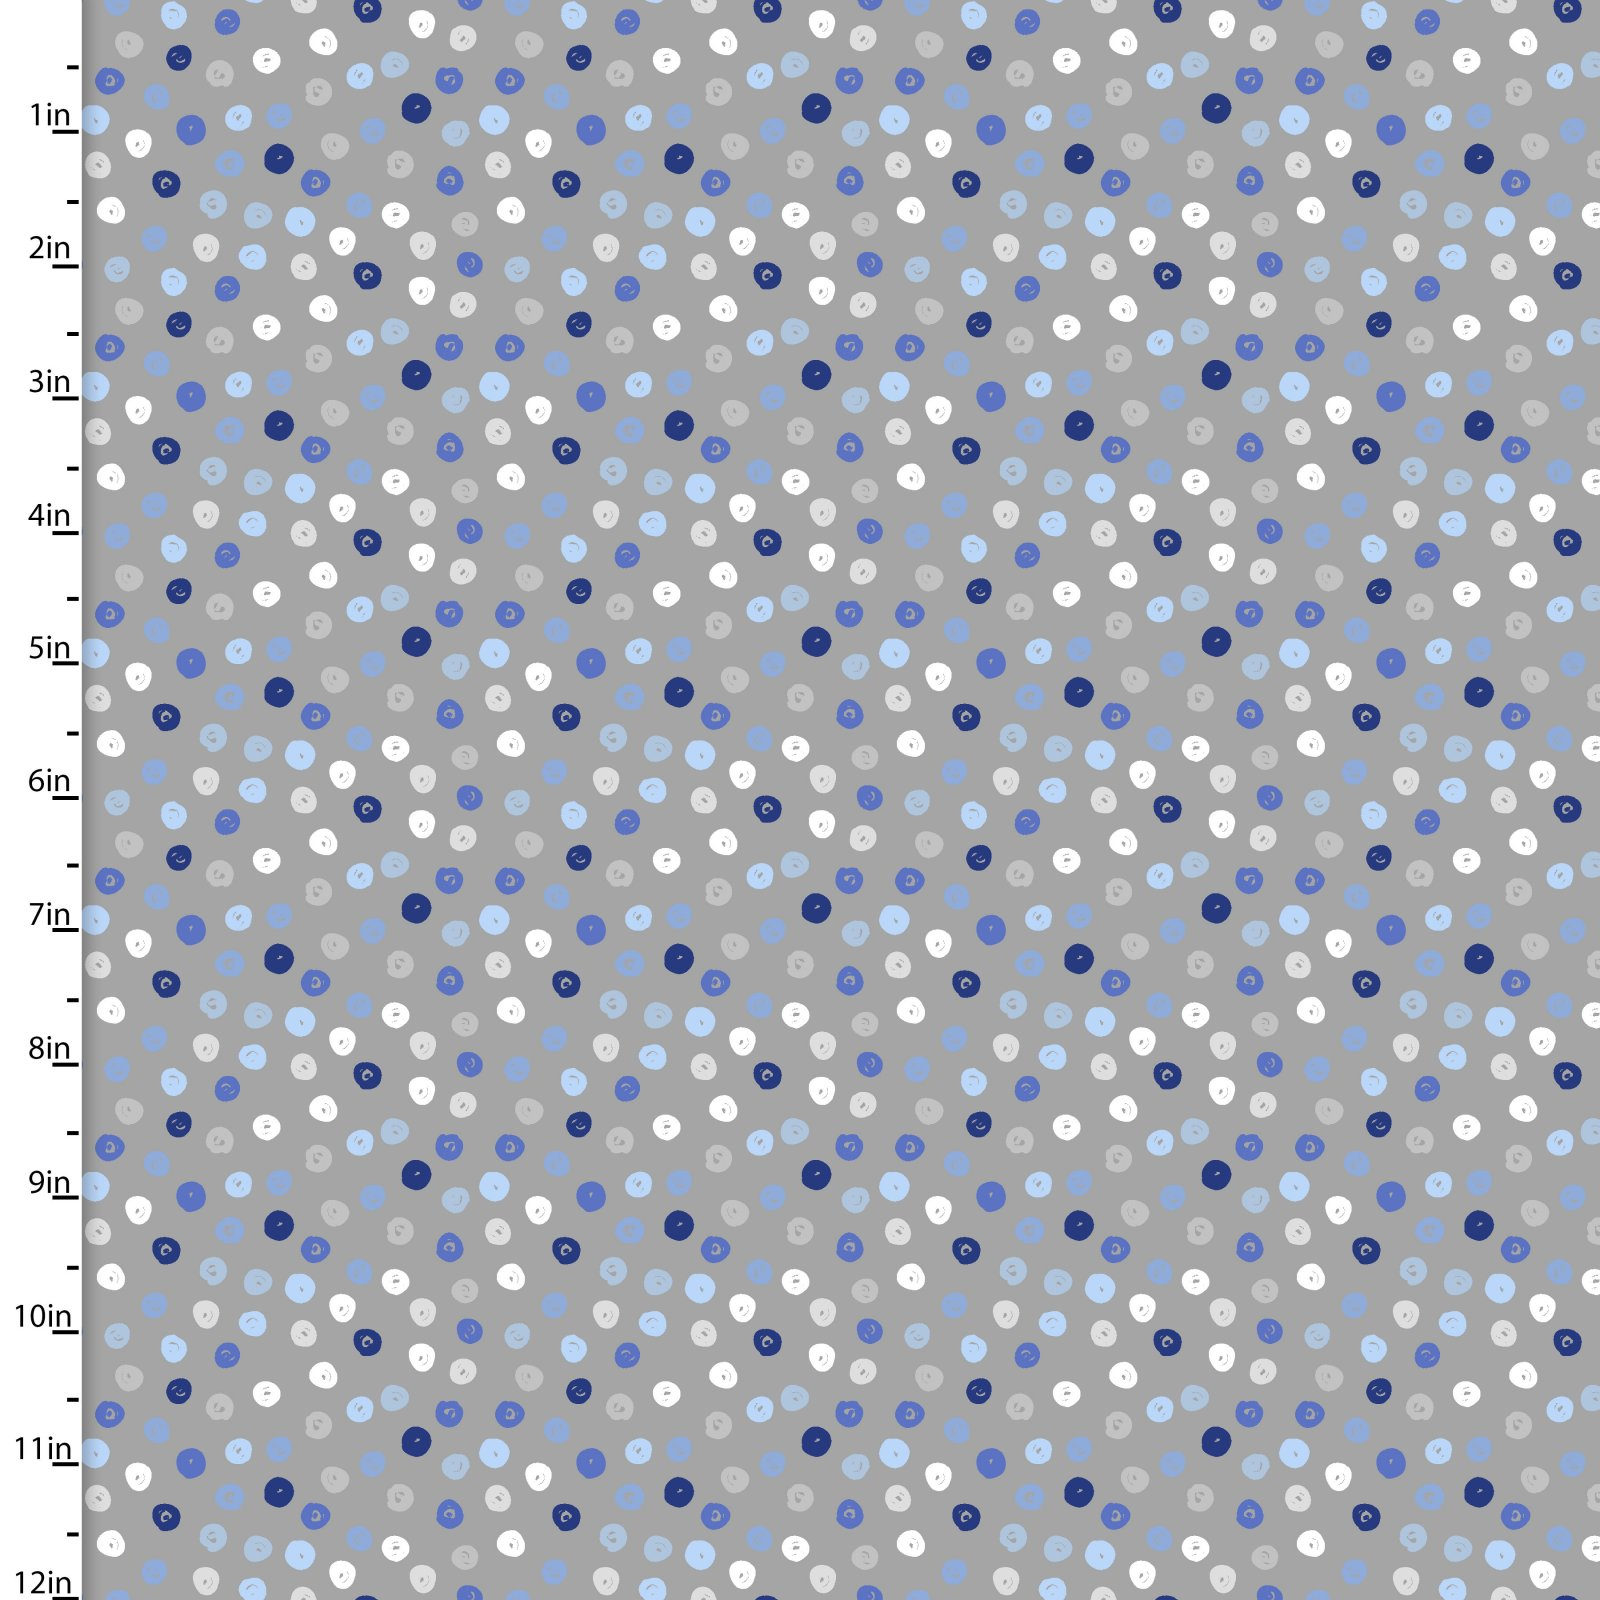 Zippy Zoo Blue Dots on Gray